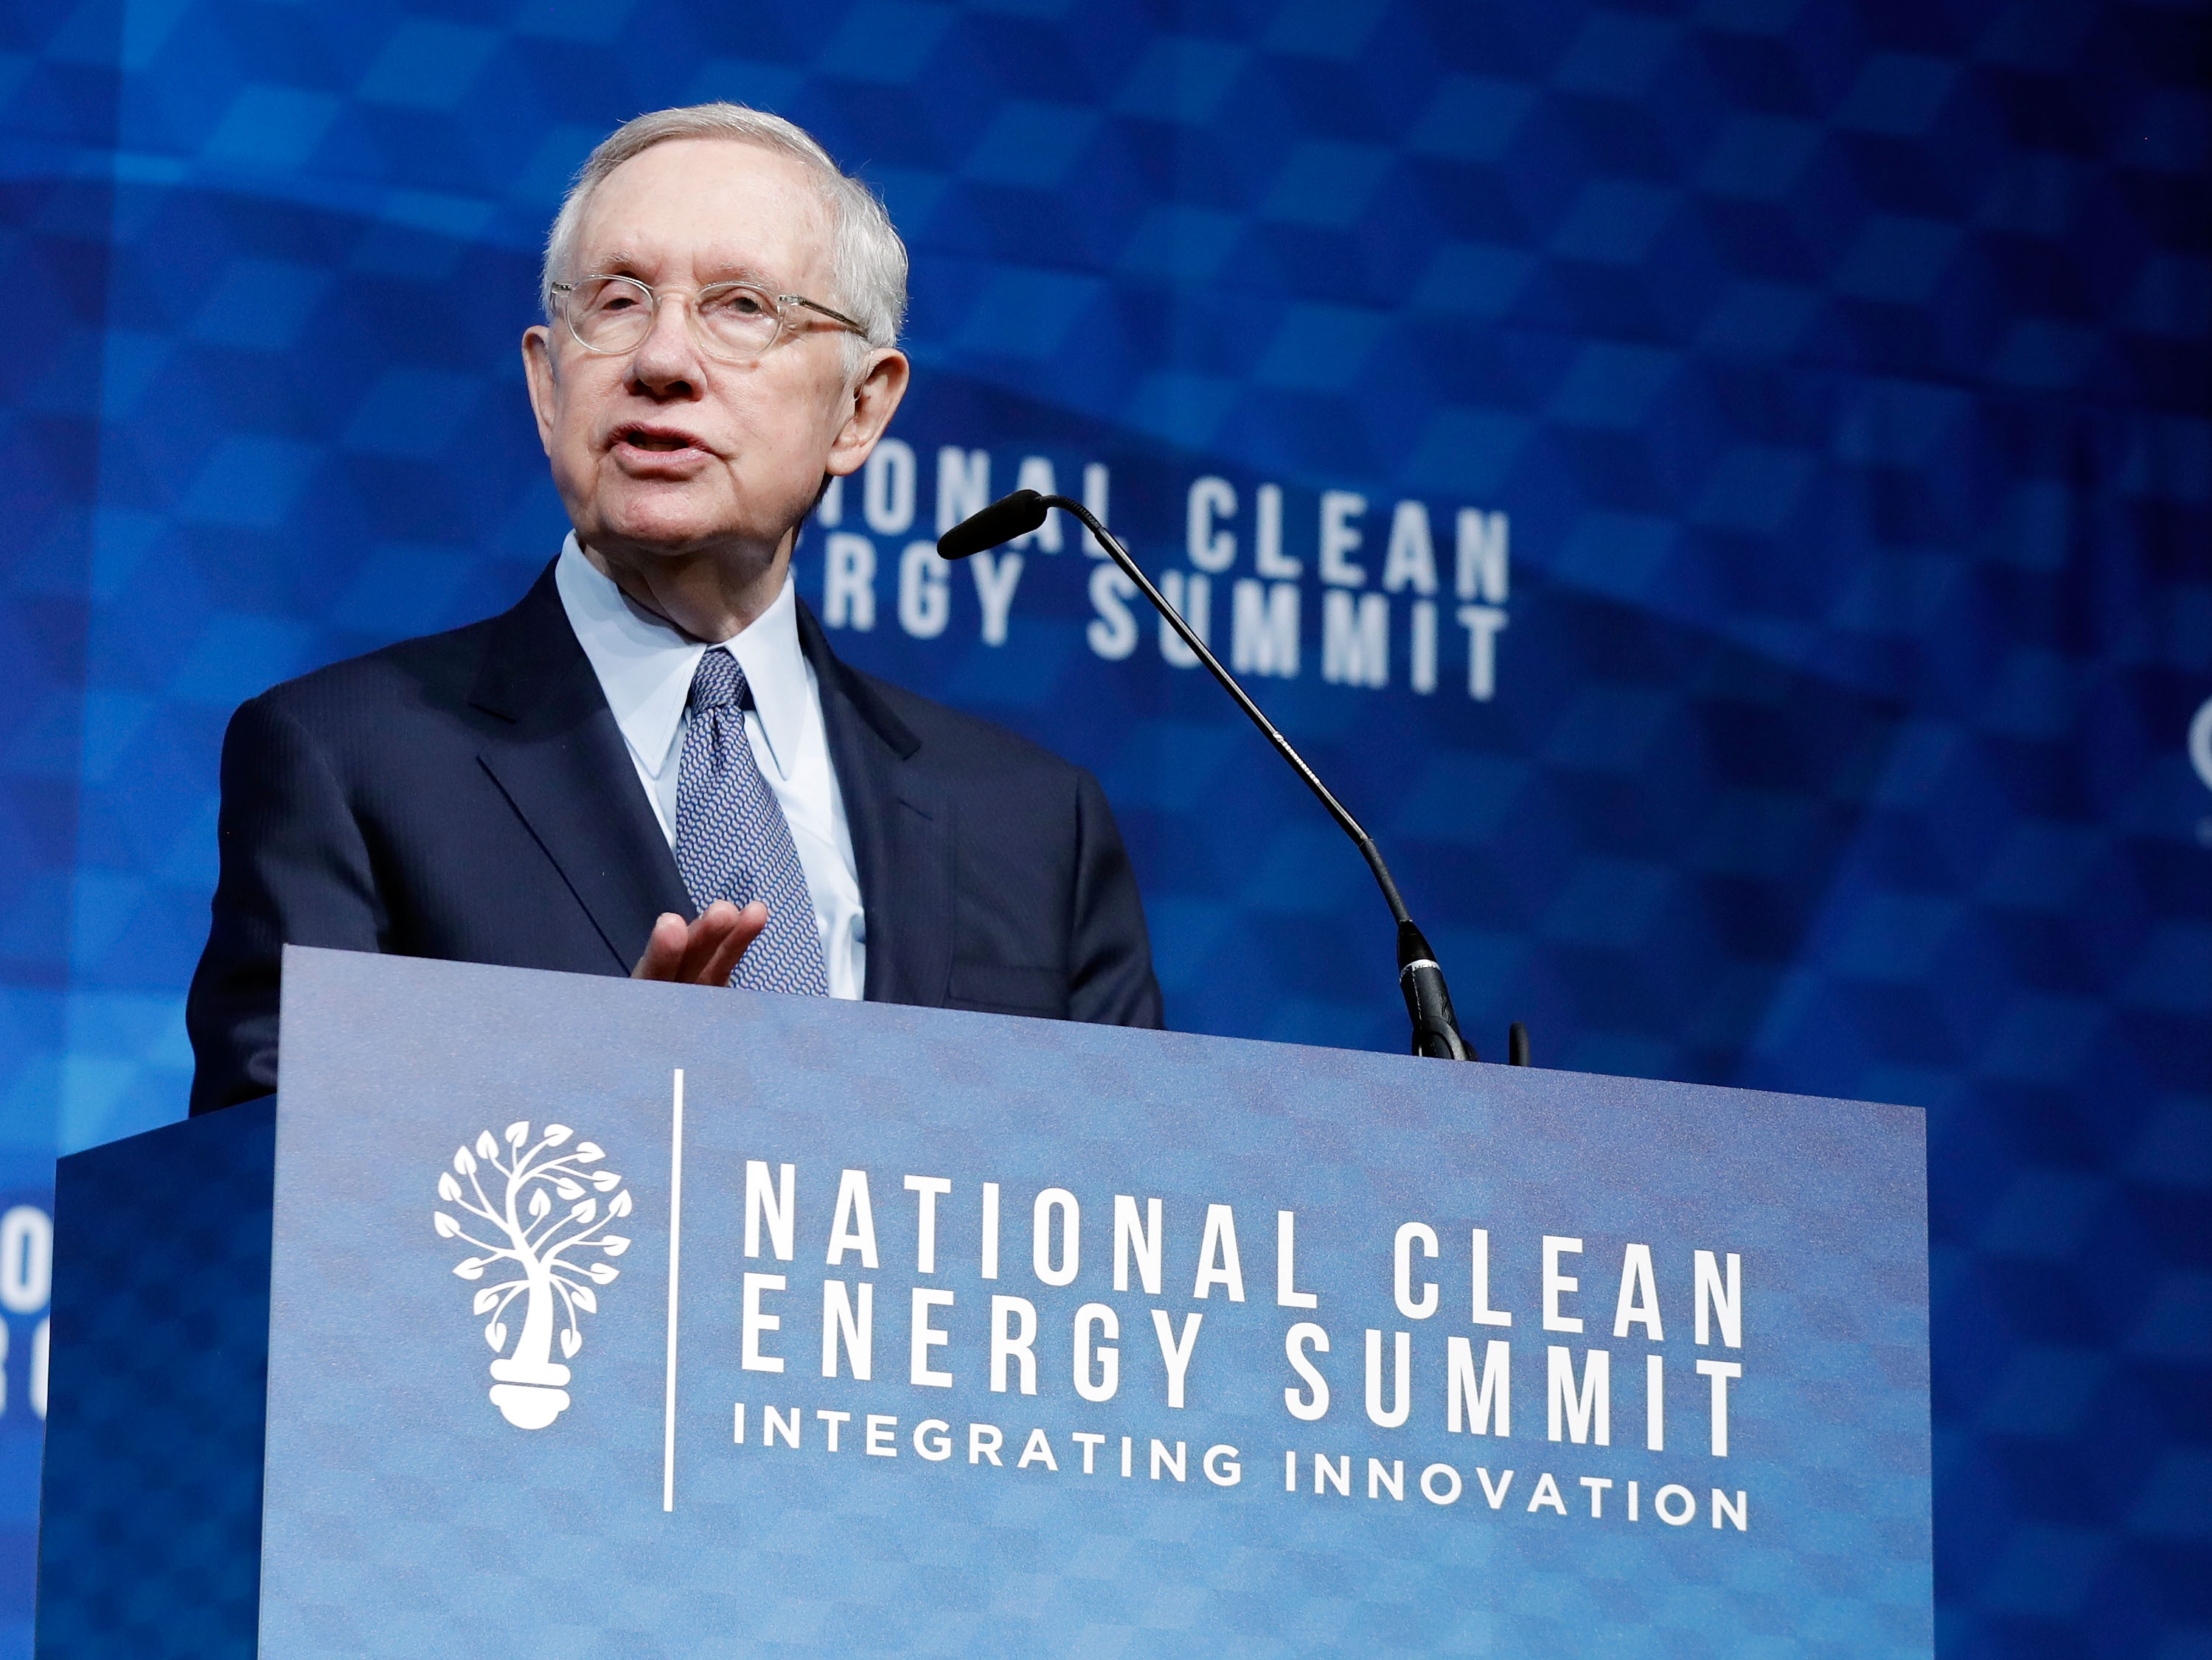 Former U.S. Senator Harry Reid speaks during the National Clean Energy Summit 9.0 on October 13, 2017 in Las Vegas, Nevada. (Photo by Isaac Brekken/Getty Images for National Clean Energy Summit)